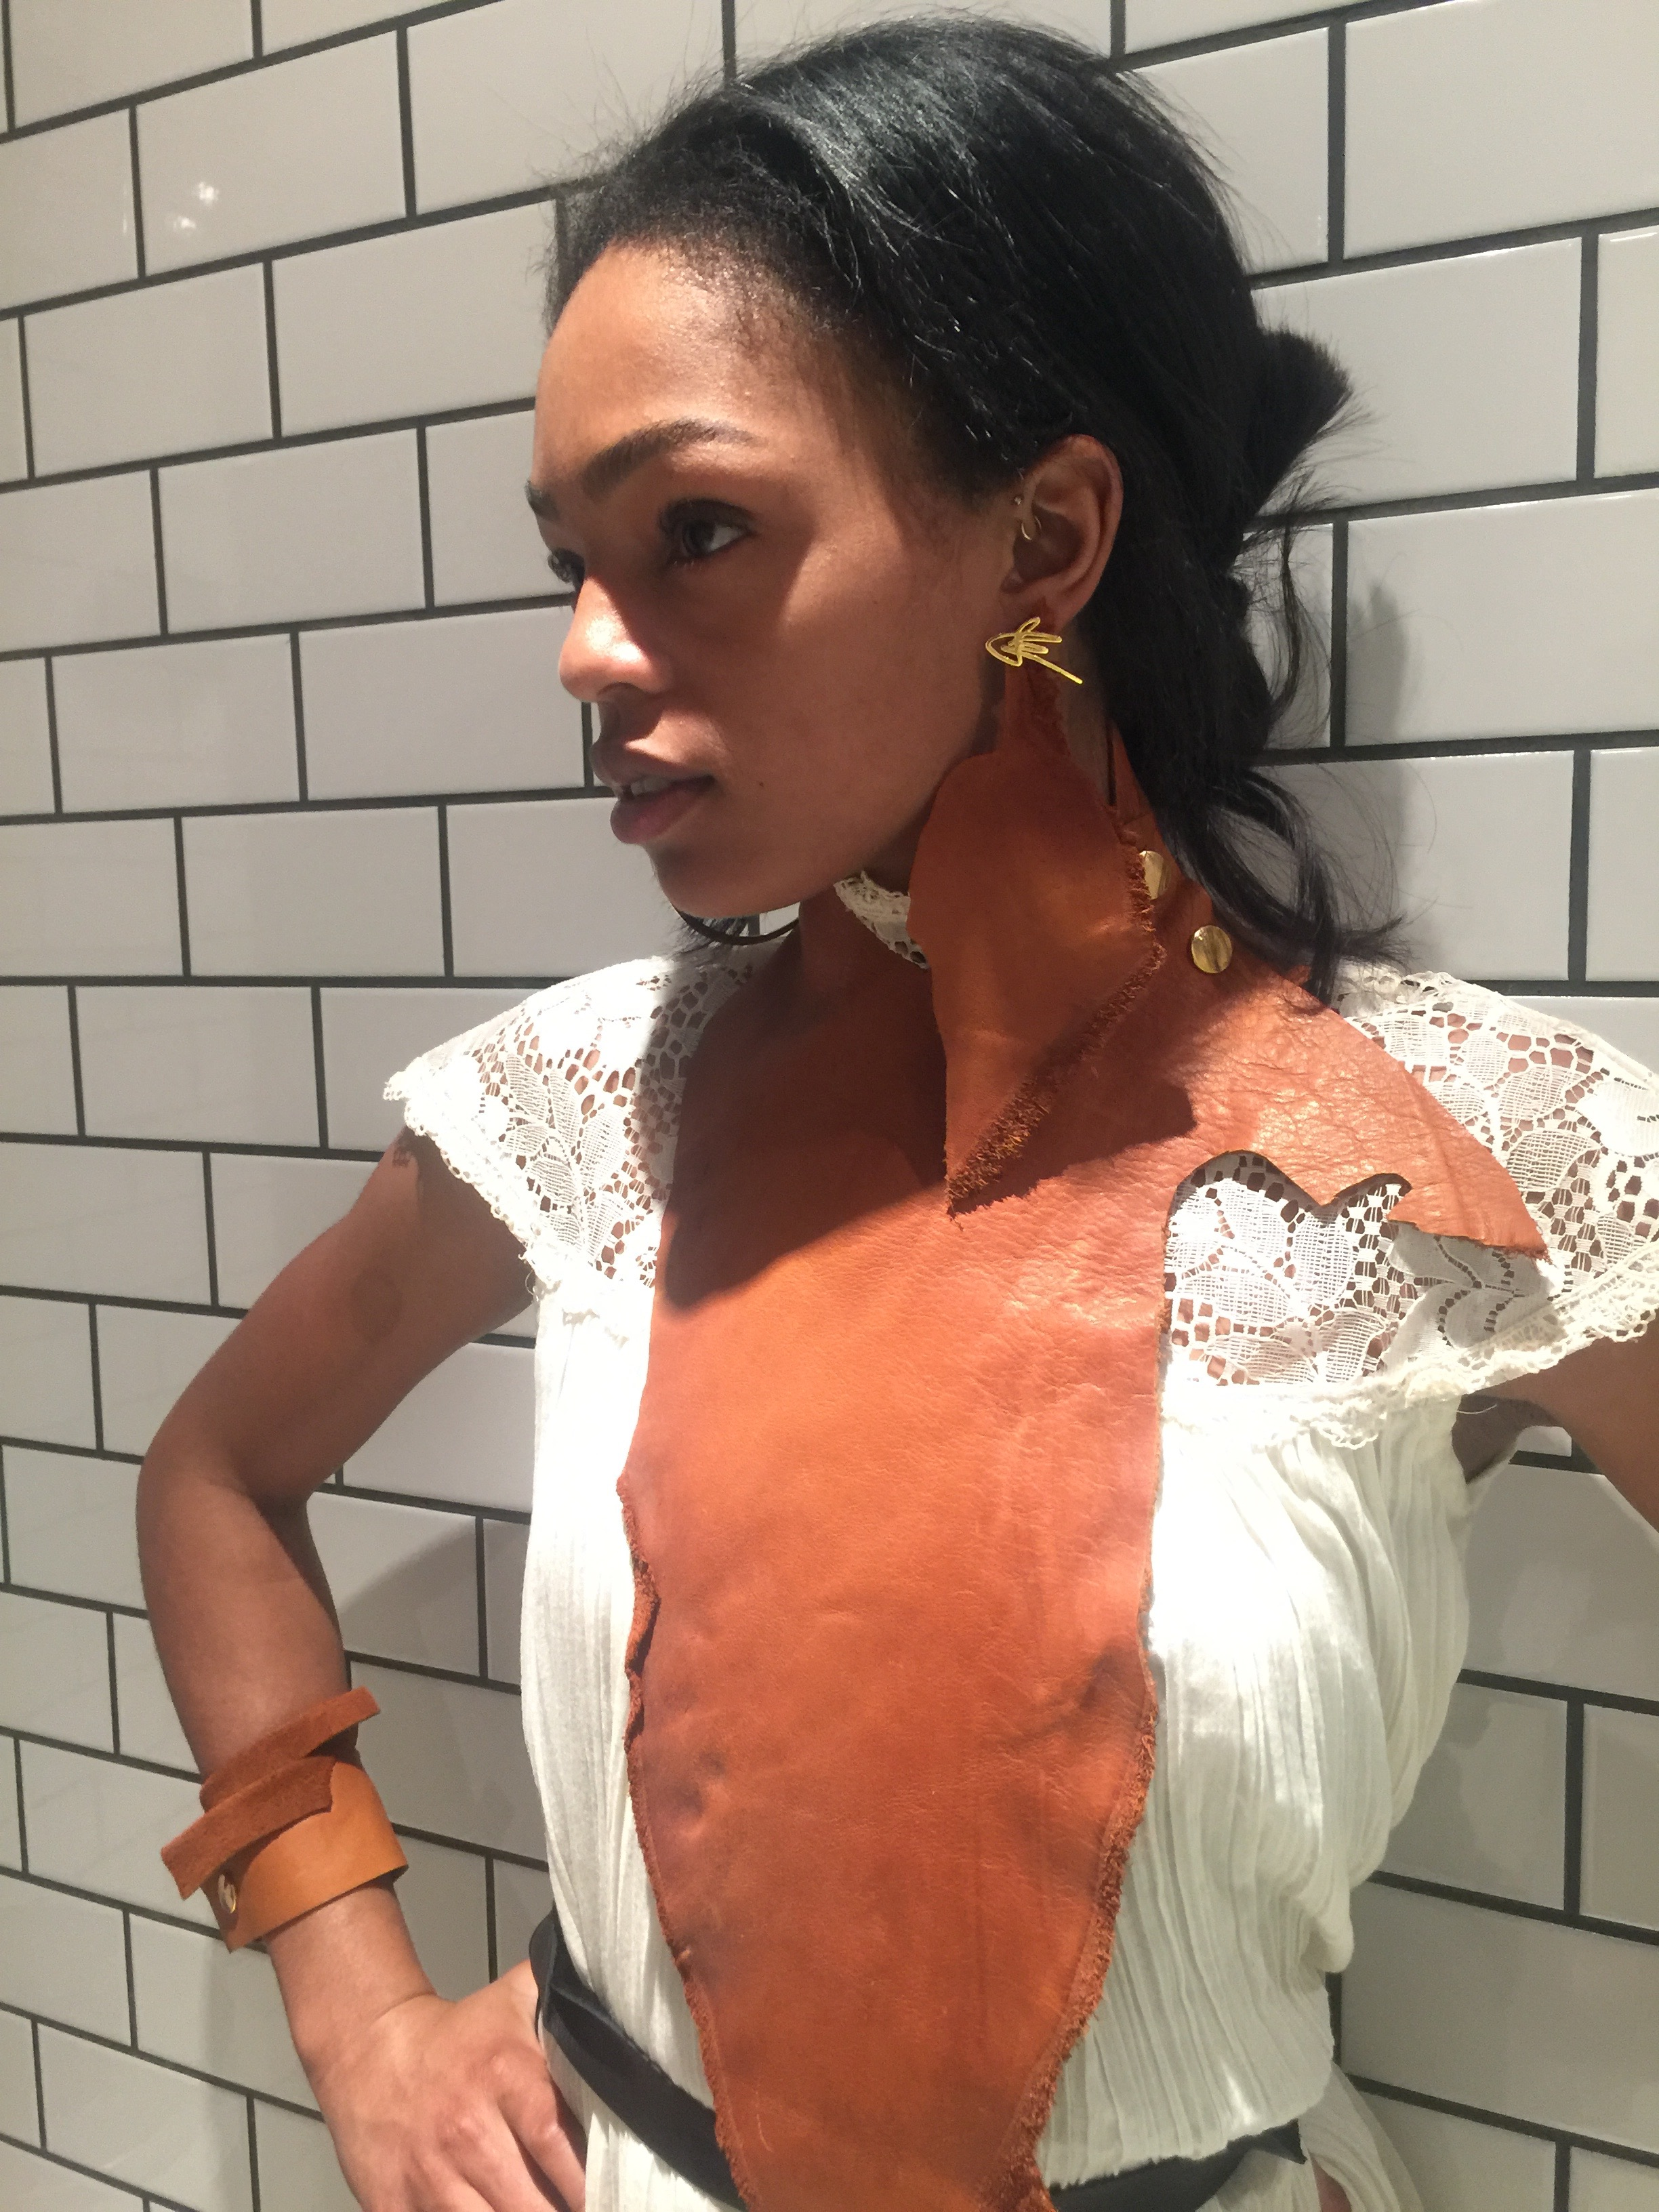 J.Elster The Jagged Folded Cuff in Natural on Selah Marley